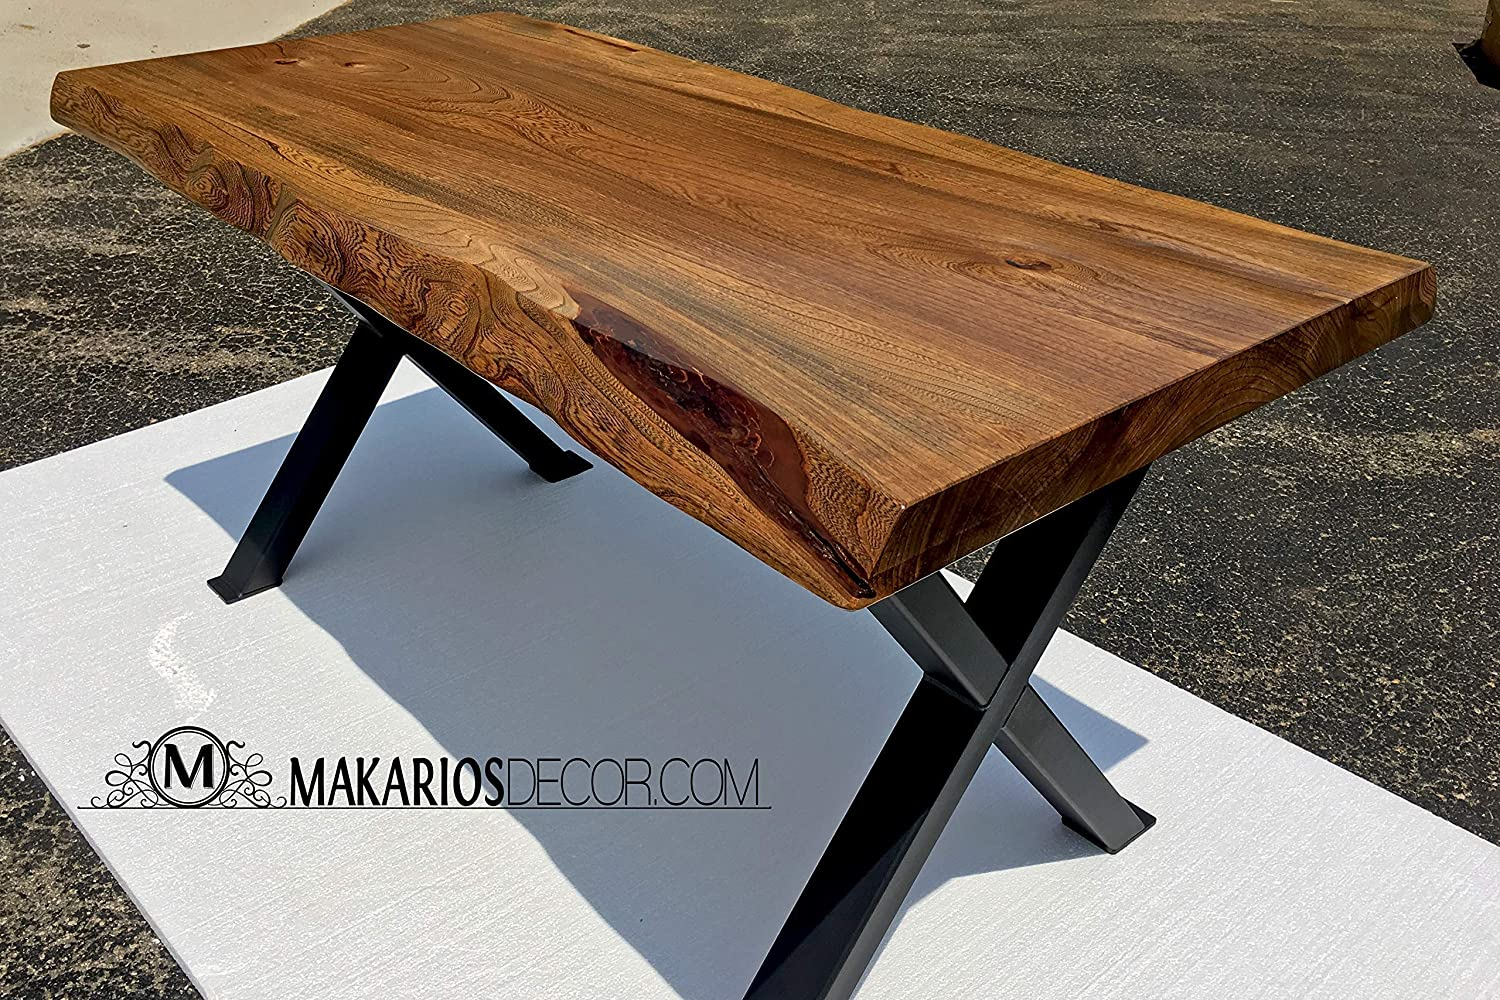 Amazon Com Wood Slab Dining Table Live Edge Slab Wood Slabs Modern Wood Slab Wood Slab Base Table Top Wood Table Top Desk Top Dining Table Top Tabletop Butcher Block Vanity Top Handmade